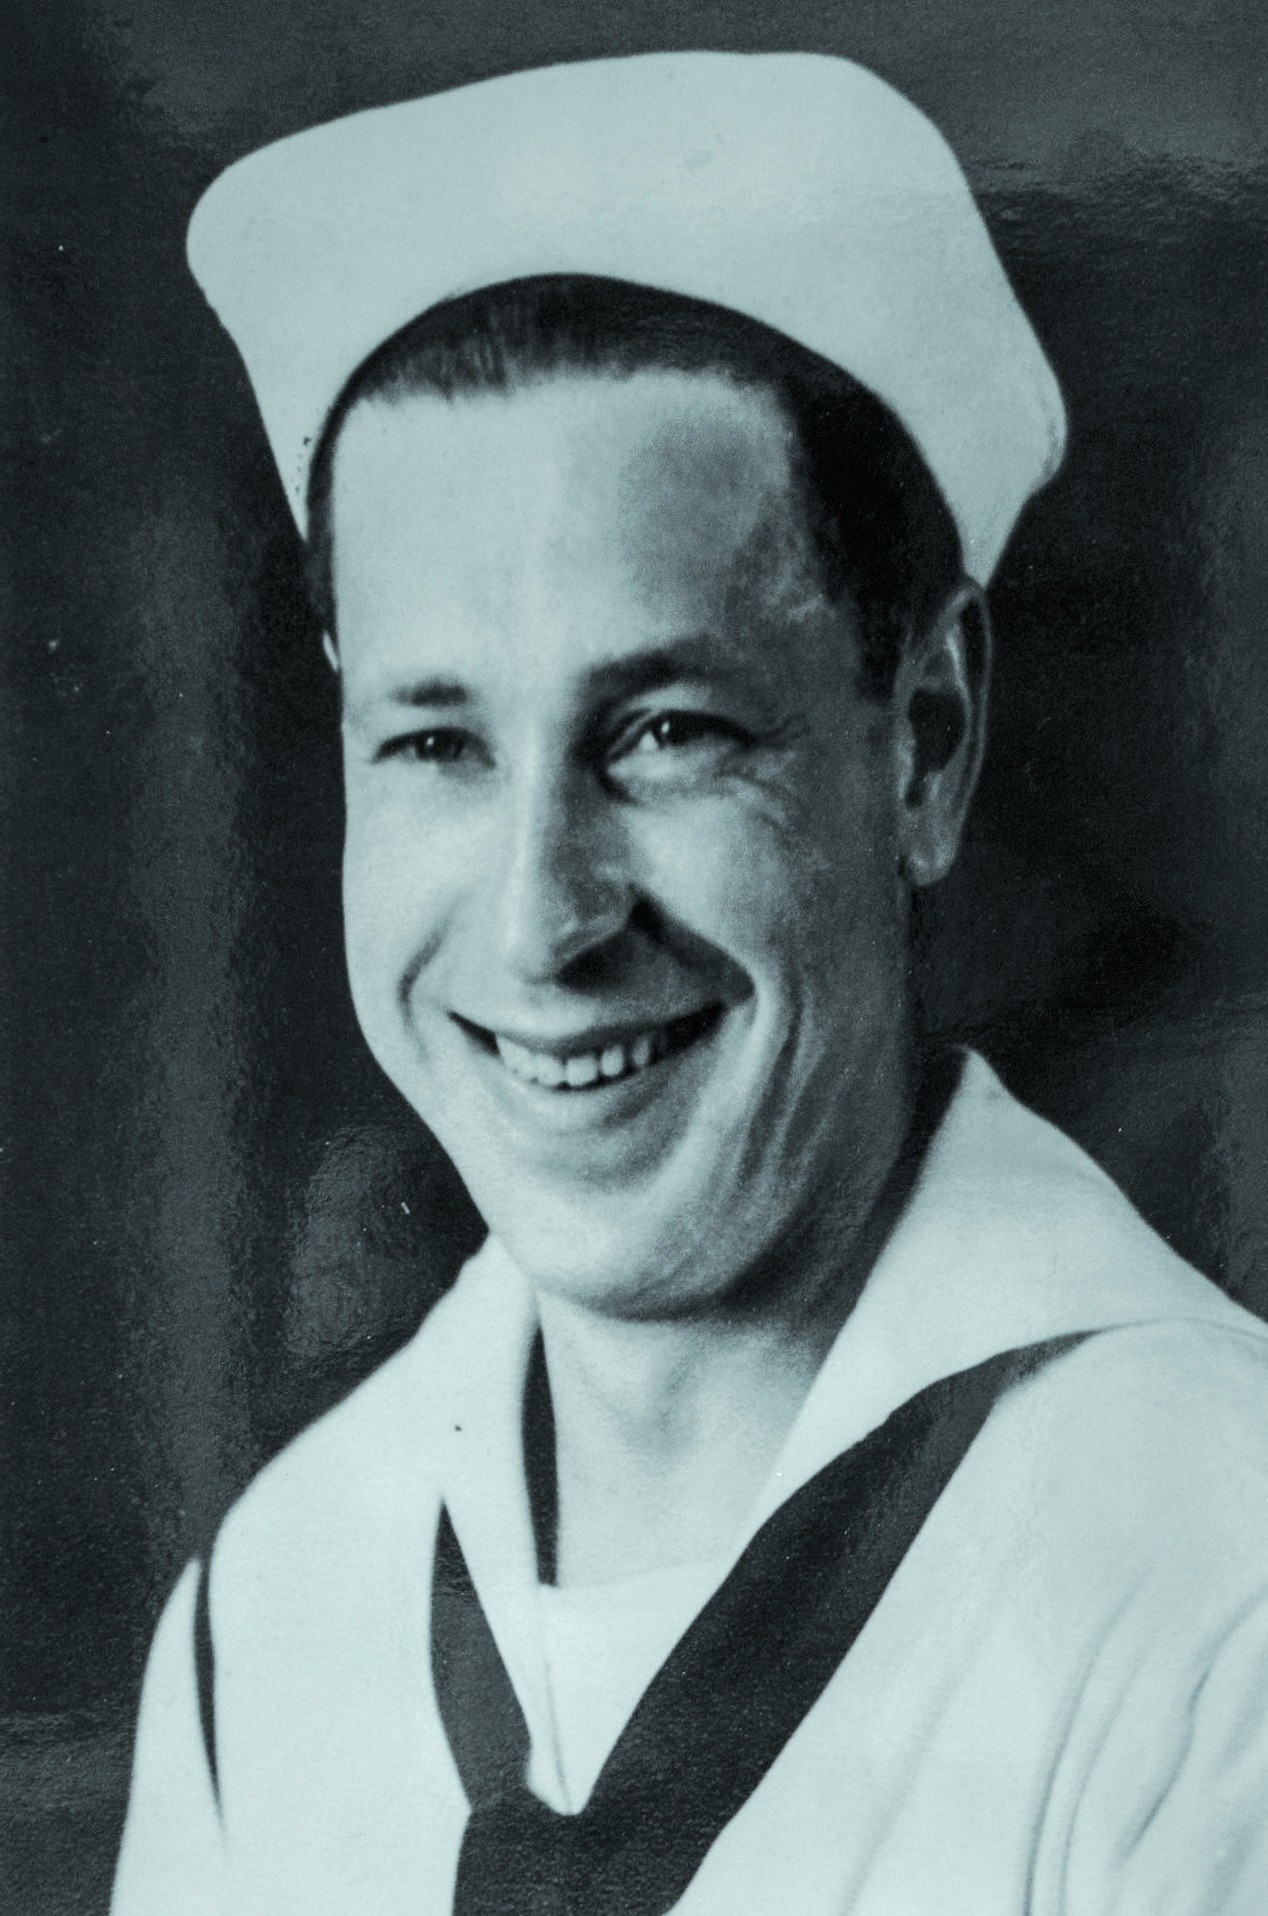 Atwood spent 17 years in the U.S. Navy before joining the Navy Reserves.